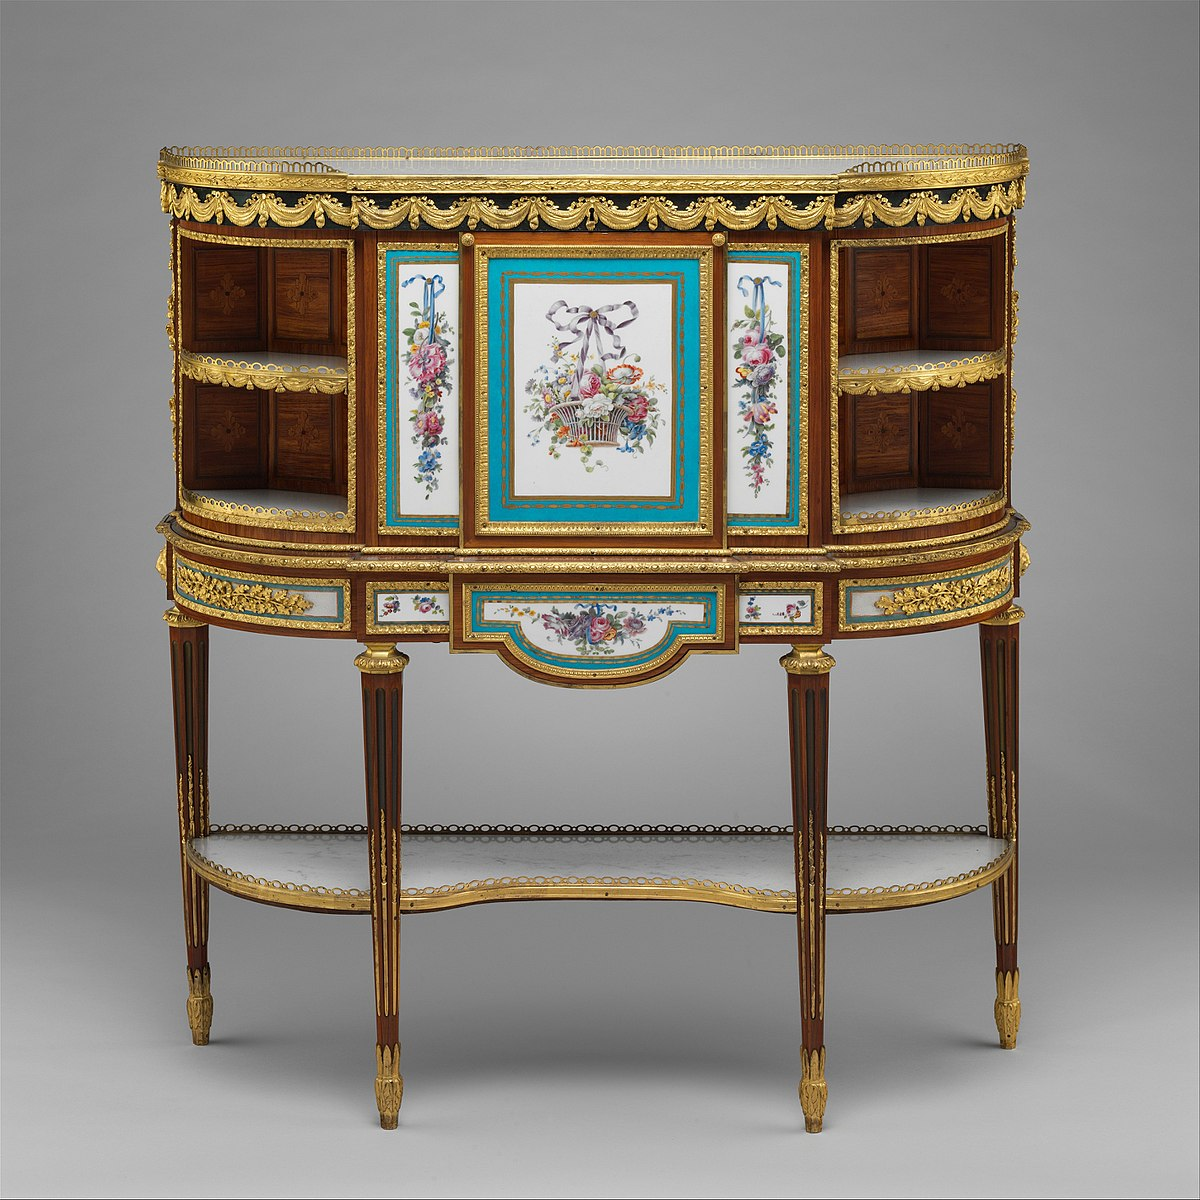 Furnuture: Louis XVI Furniture